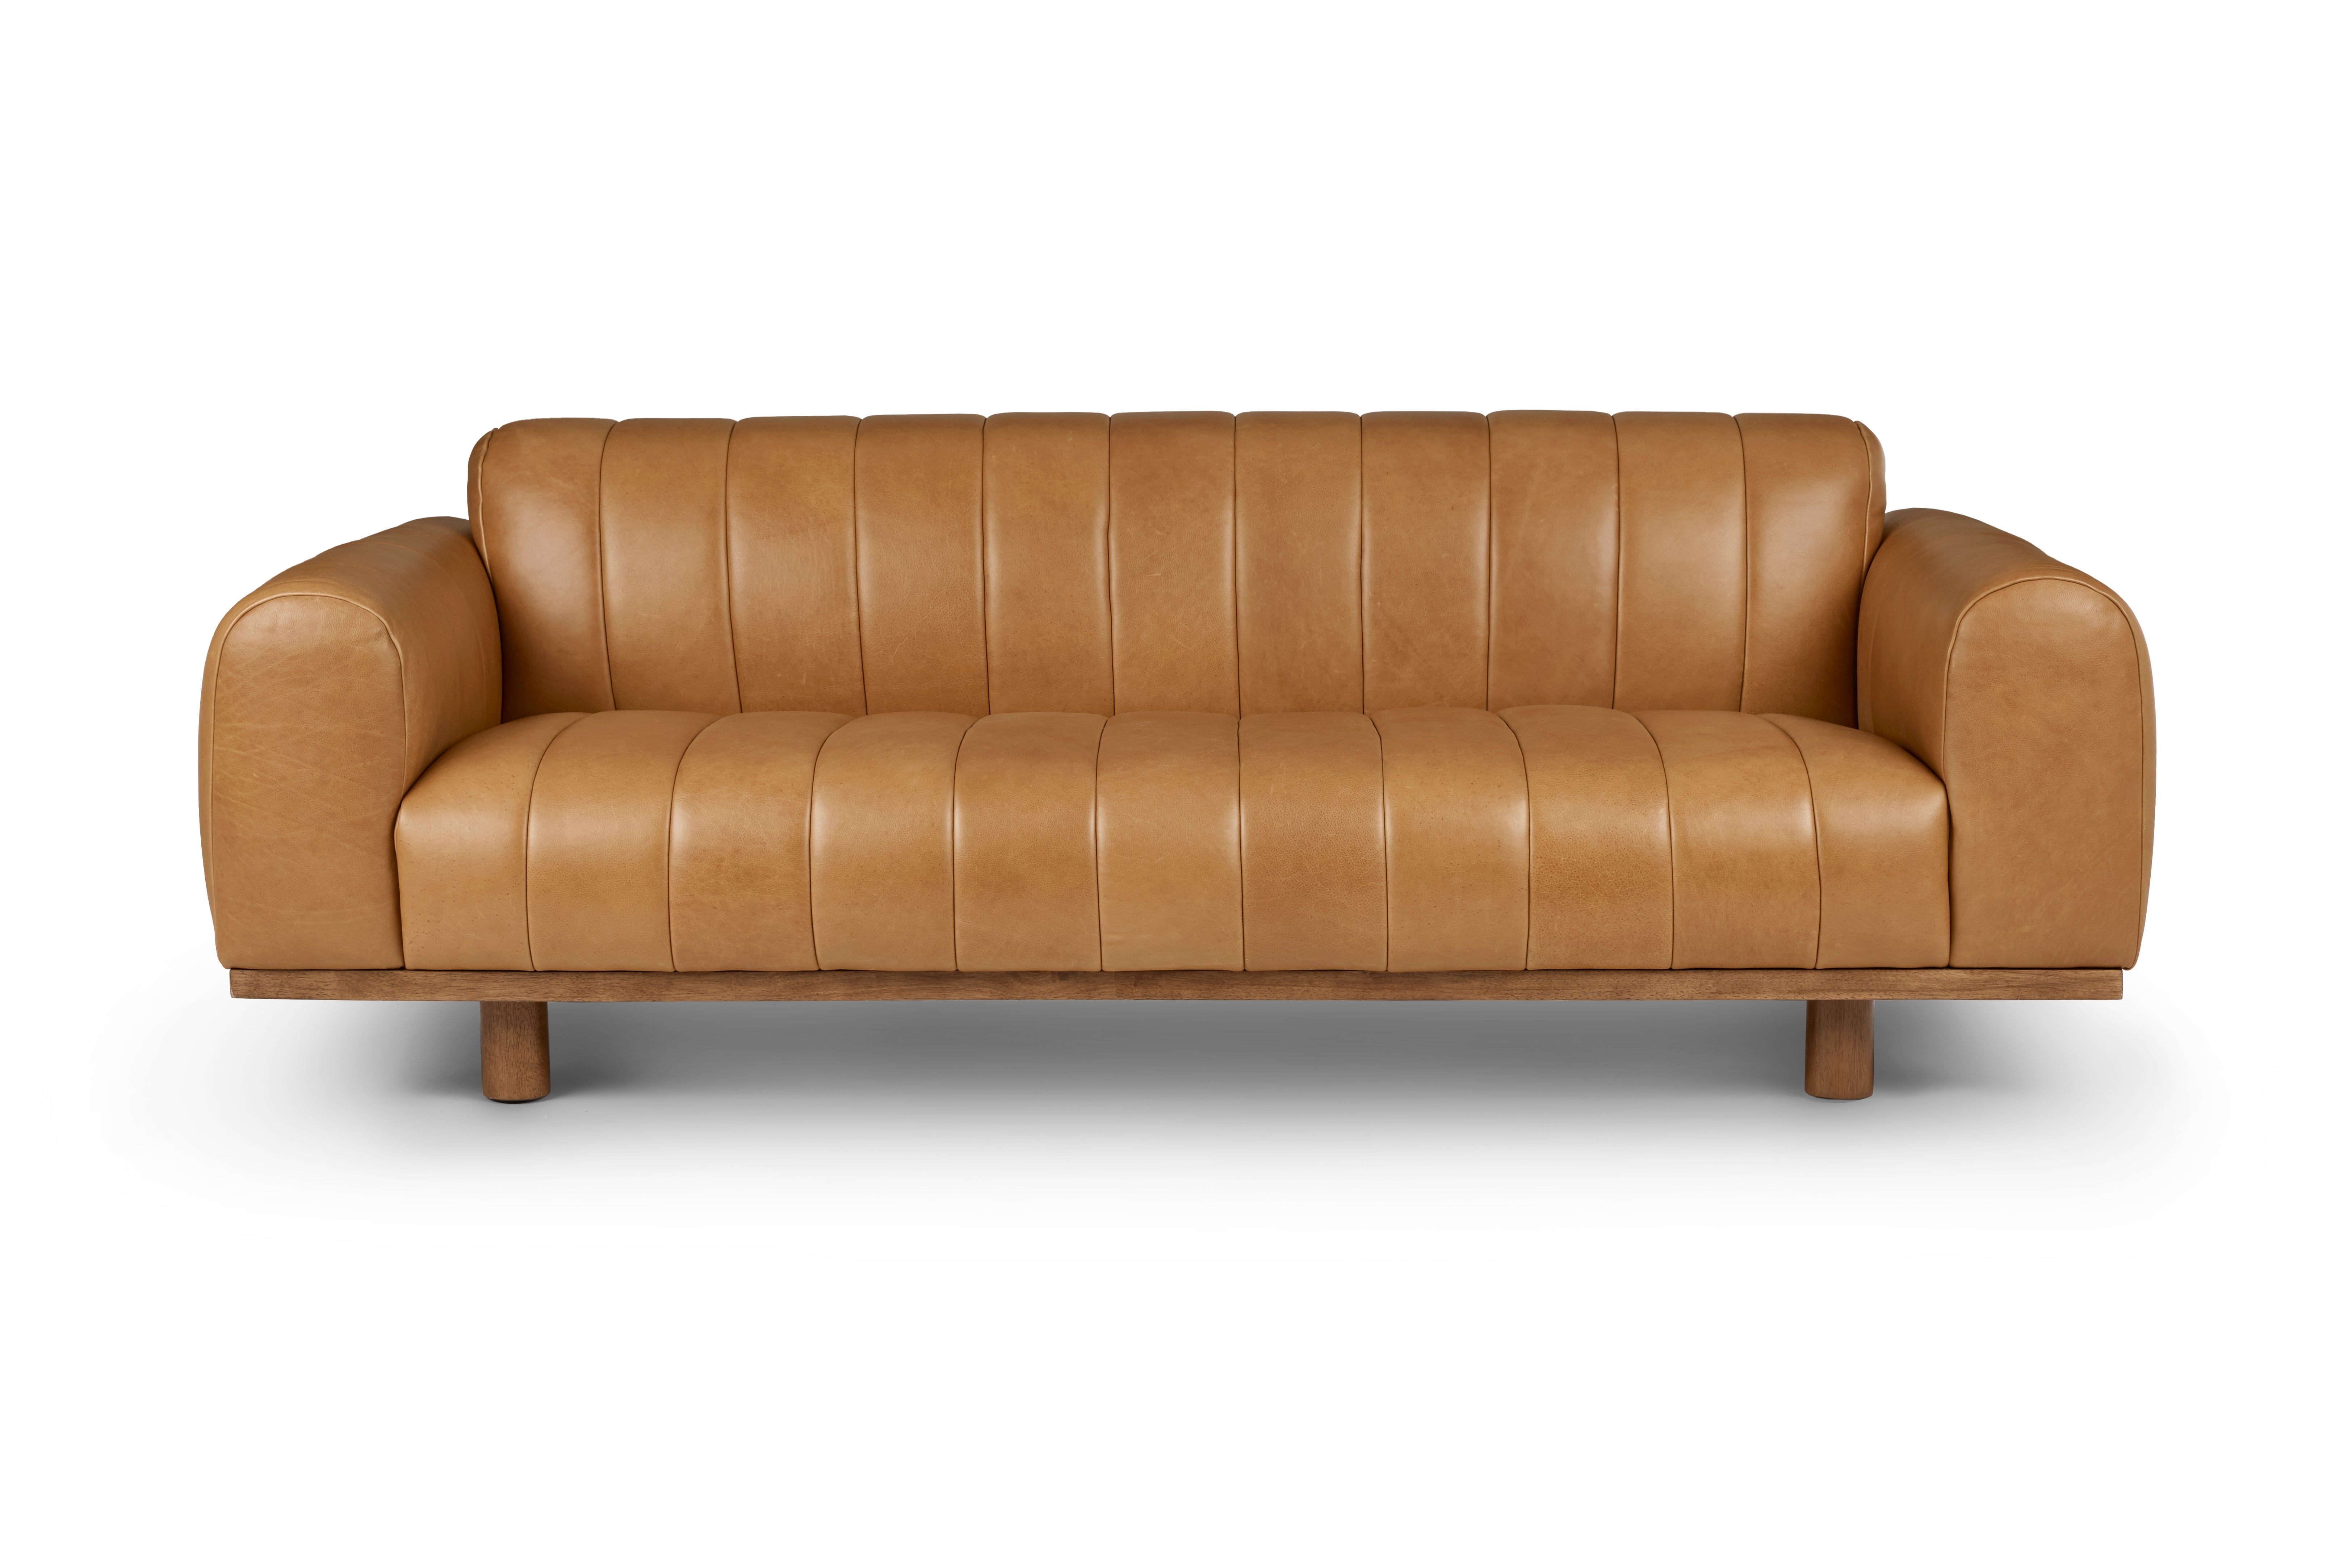 Article's Fall Launch Has Us Excited About Mid-Century Modern Style Again